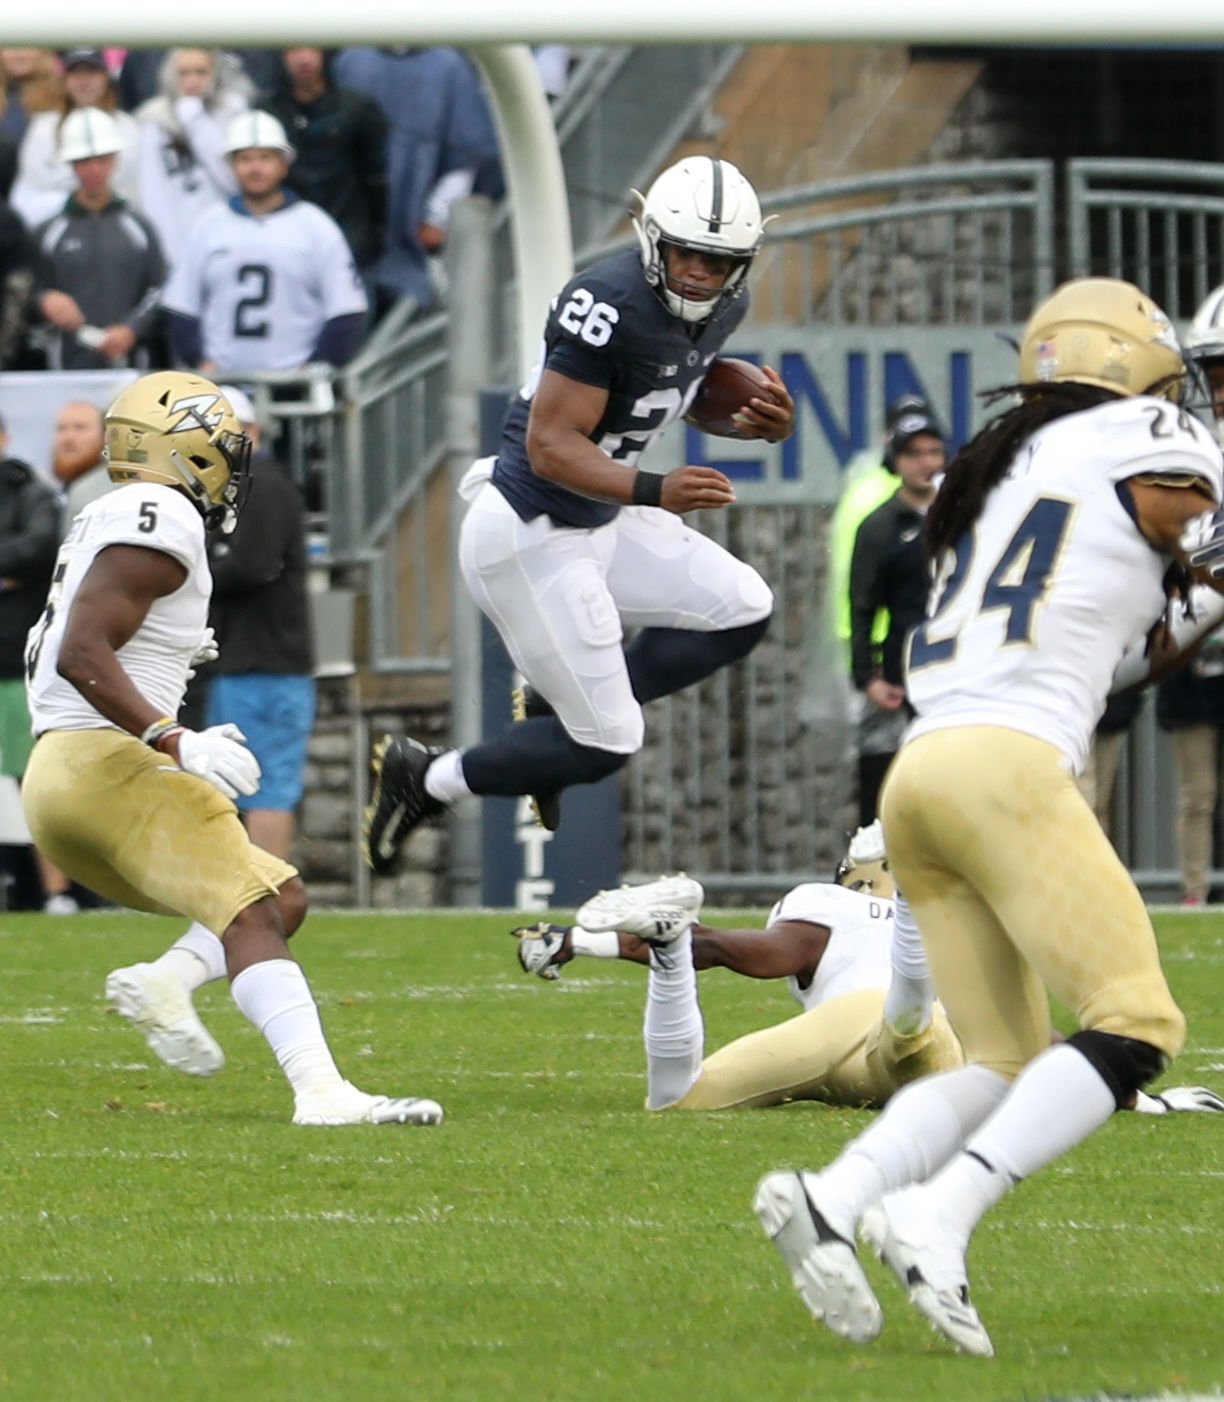 Total domination for Penn State in season opener against Akron